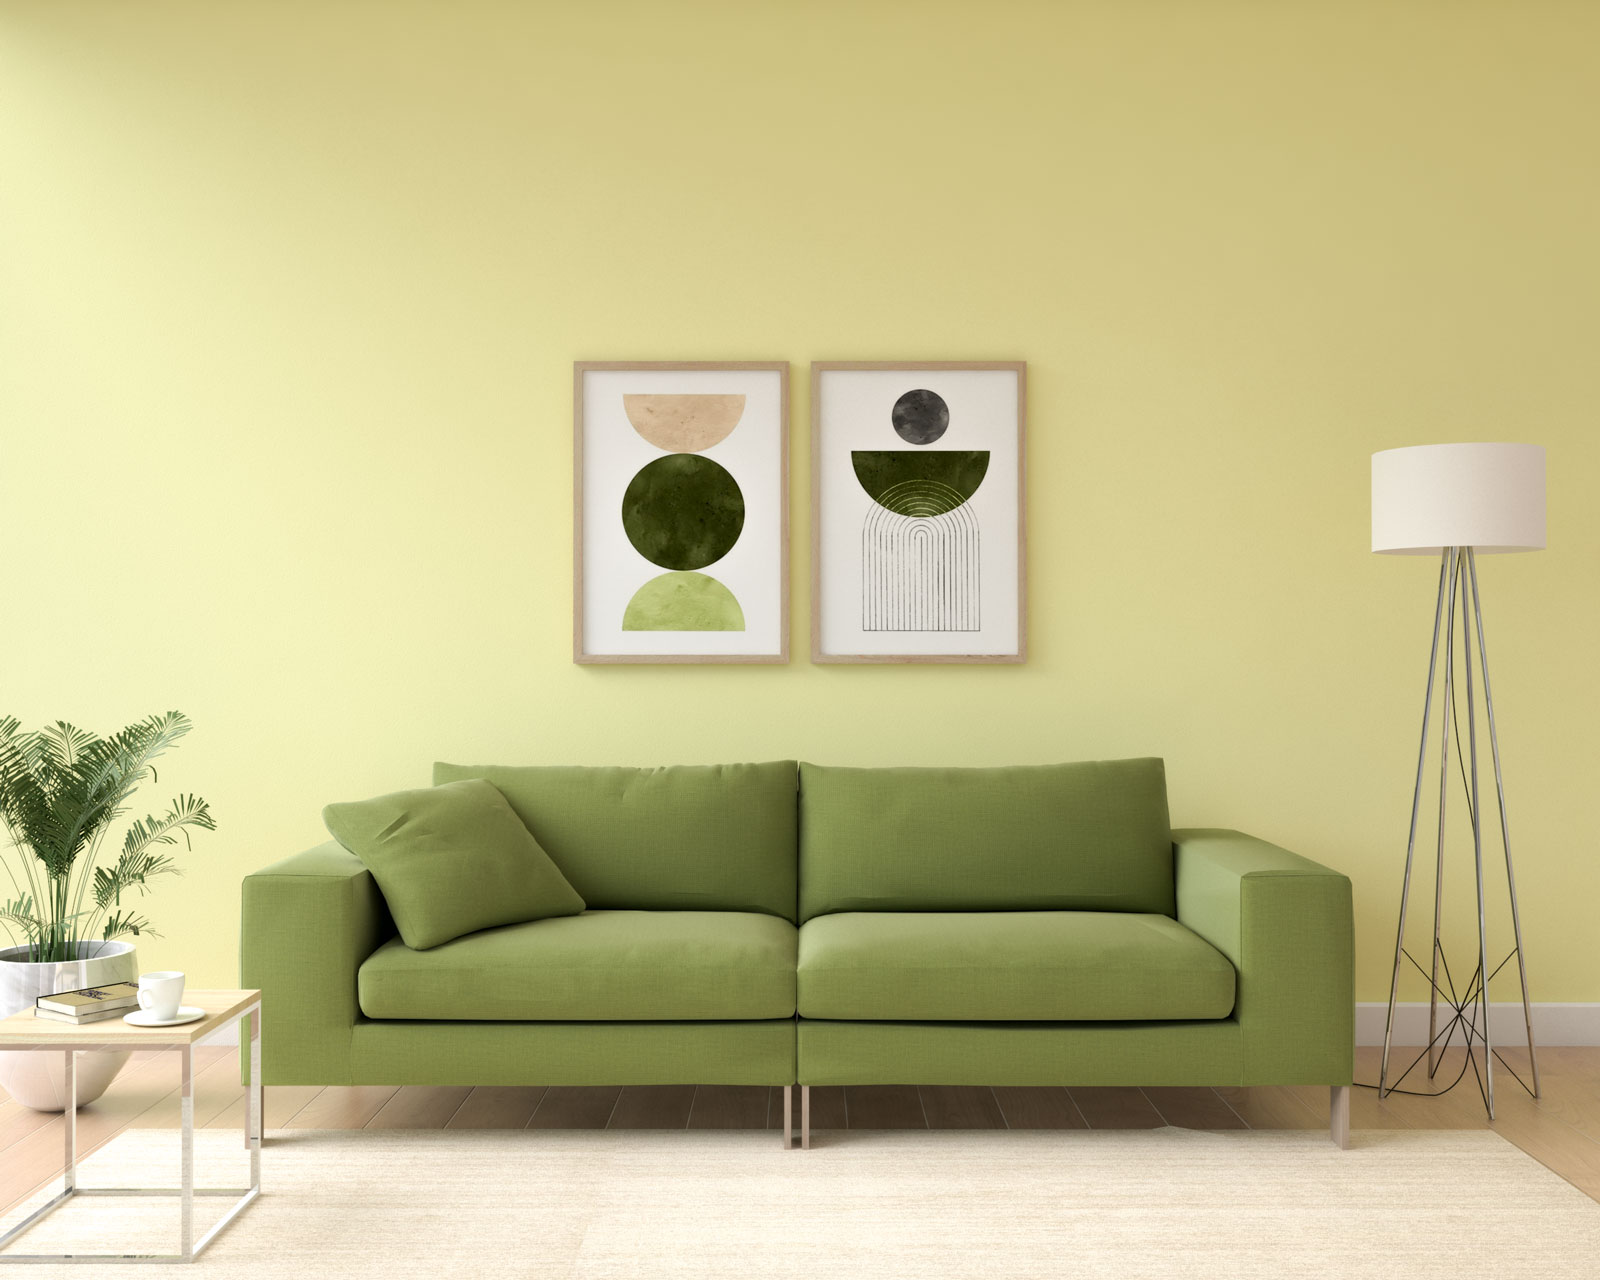 Olive couch with pale yellow walls